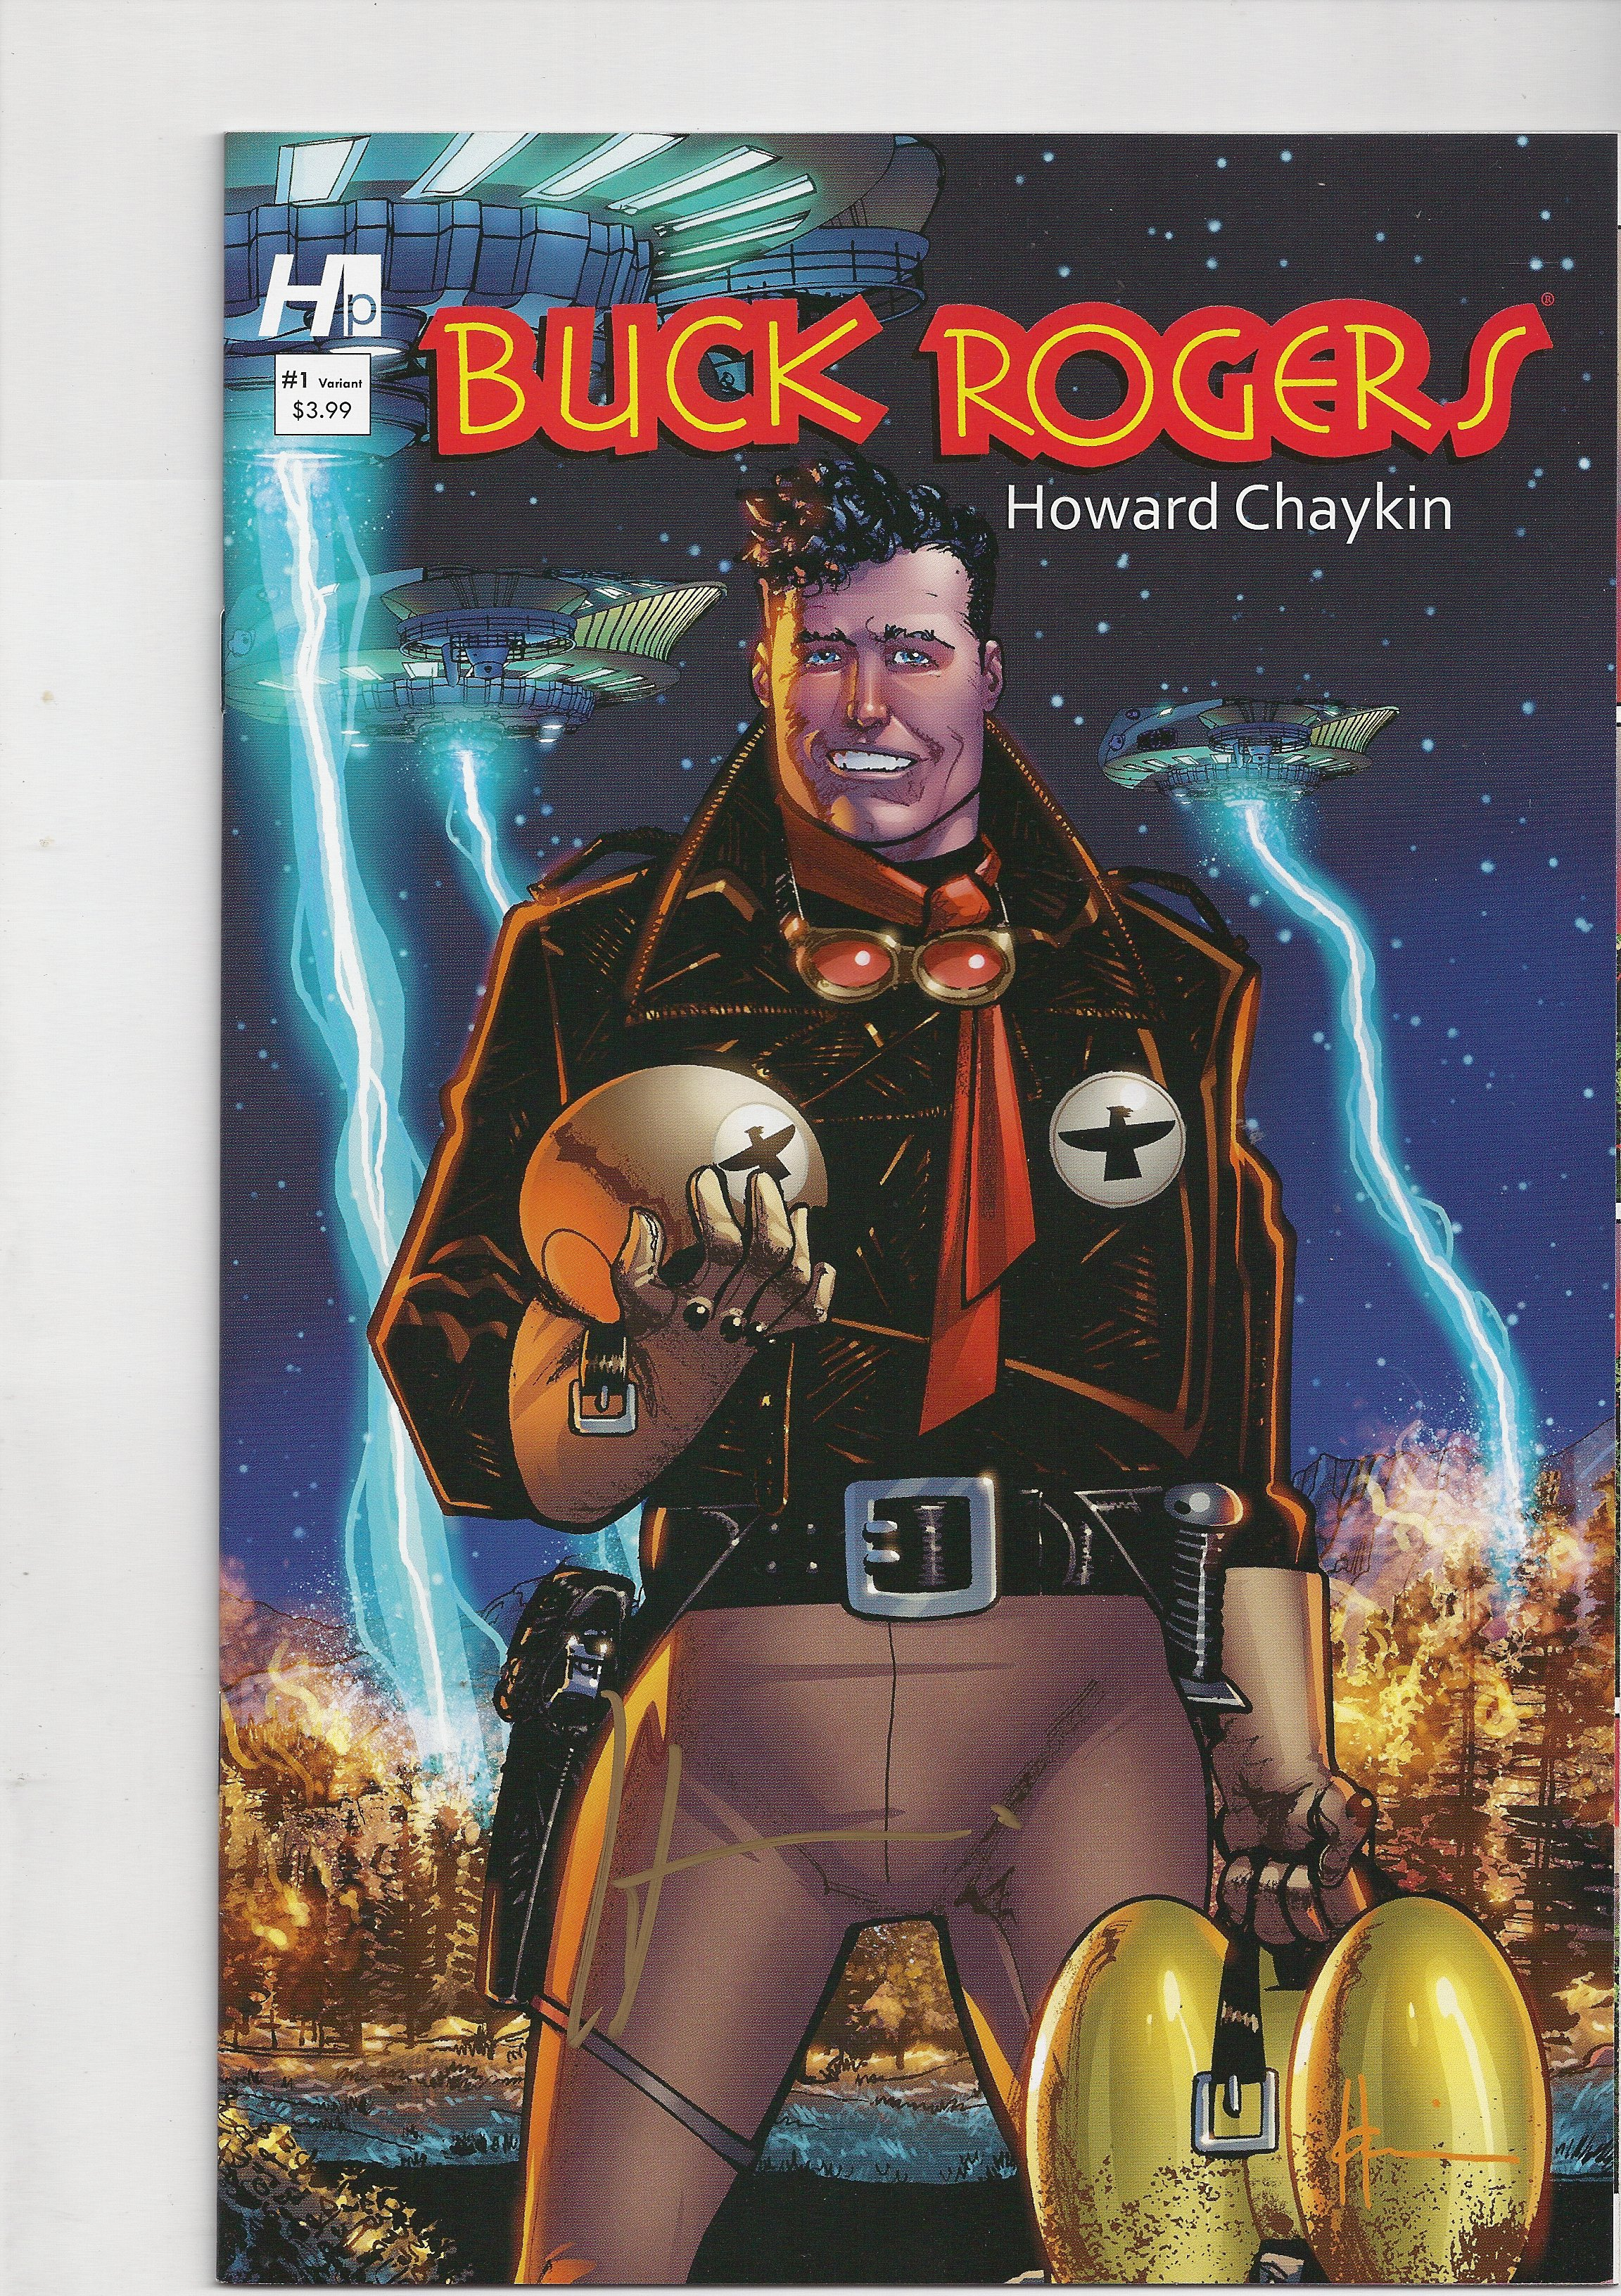 Buck Rogers # 1 - Added to The Comics4Kids INC comic book reading library Special Collections - As Howard Chaykin's art style is without peer and will be preserved for many generations!